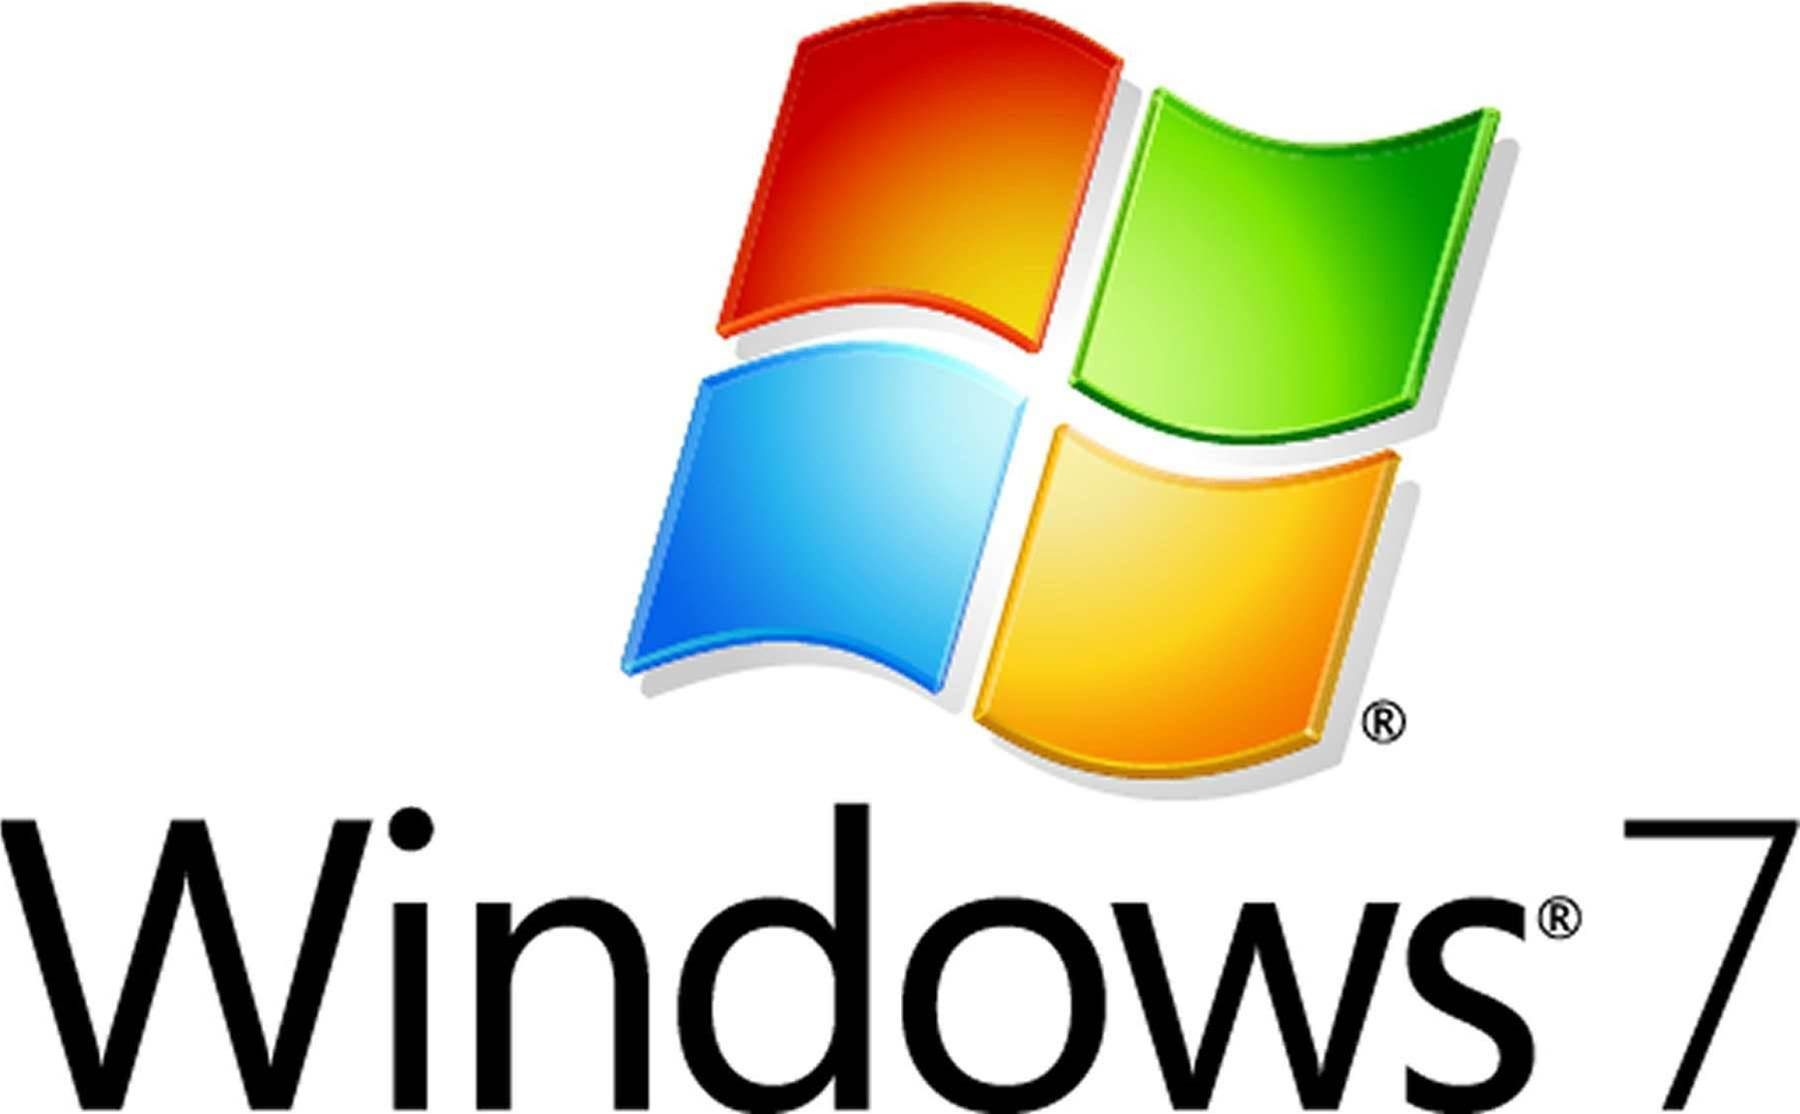 Windows 7 SP1 beta scheduled for July